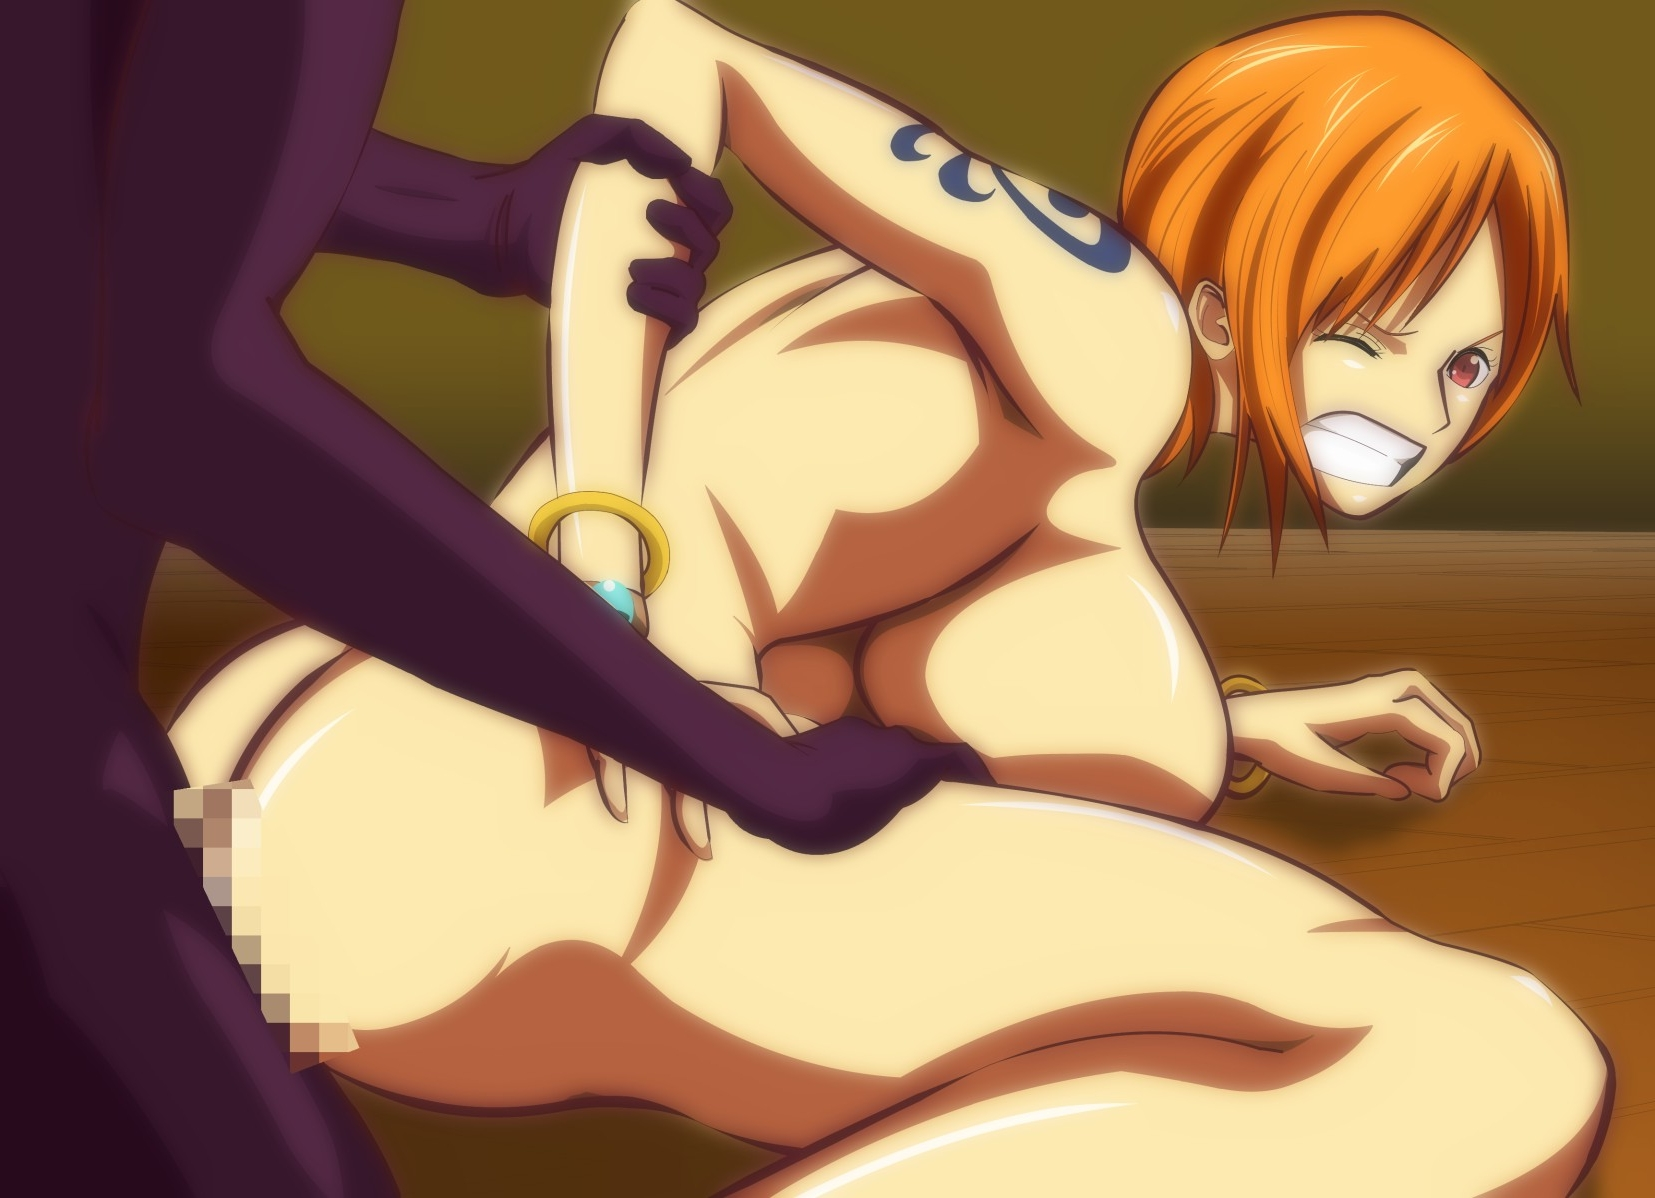 Toon sex pic ##0001301344782 female angry arm grab ass back bracelet breasts cahlacahla censored clenched teeth large breasts legs looking back nami nude one piece orange hair red eyess sex short hair sitting tattoo thighs vaginal penetration wince